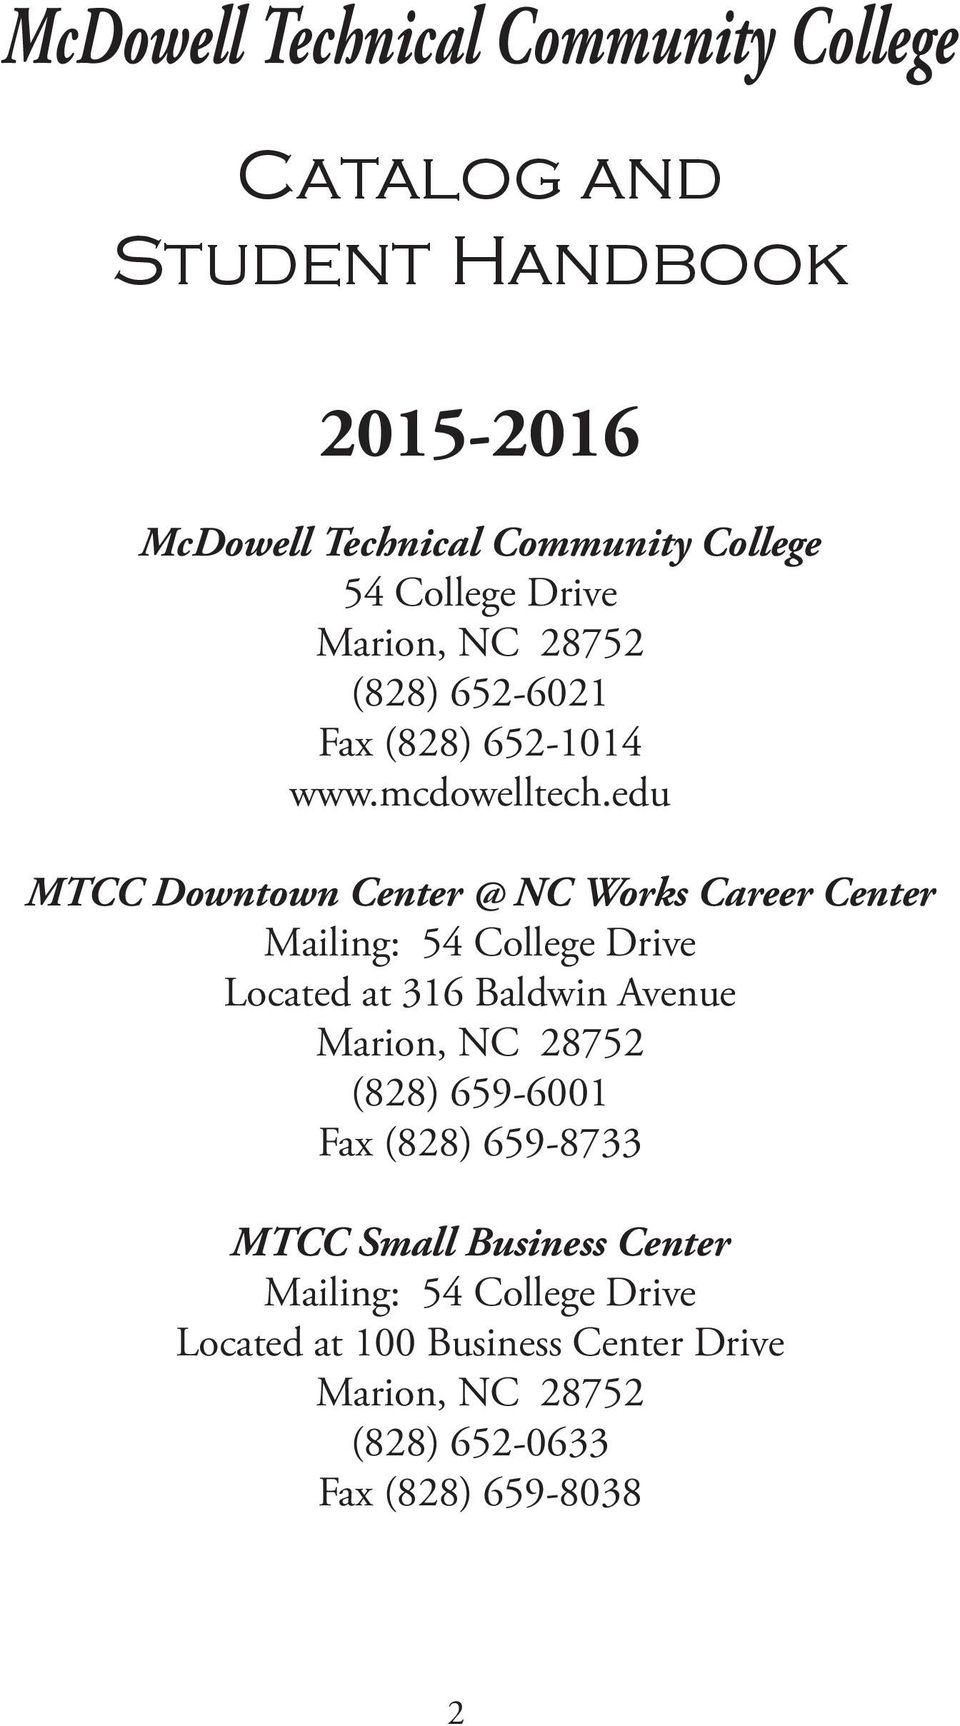 edu MTCC Downtown Center @ NC Works Career Center Mailing: 54 College Drive Located at 316 Baldwin Avenue Marion, NC 28752